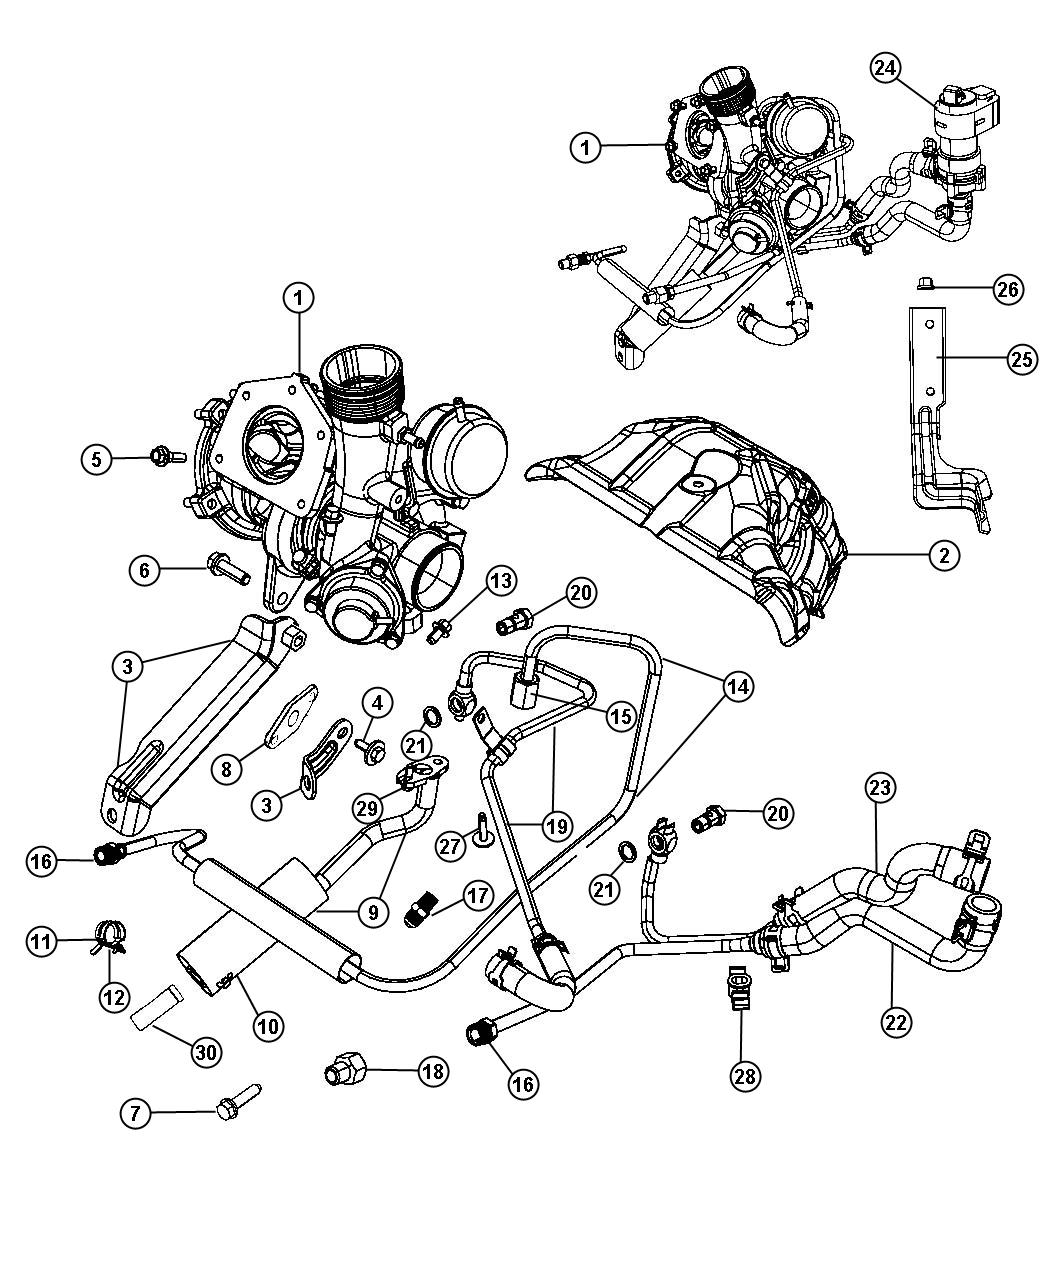 2007 Dodge Caliber Steering Diagram Electrical Wiring Diagrams 2008 Pdf U2022 For Free 2003 Honda Accord